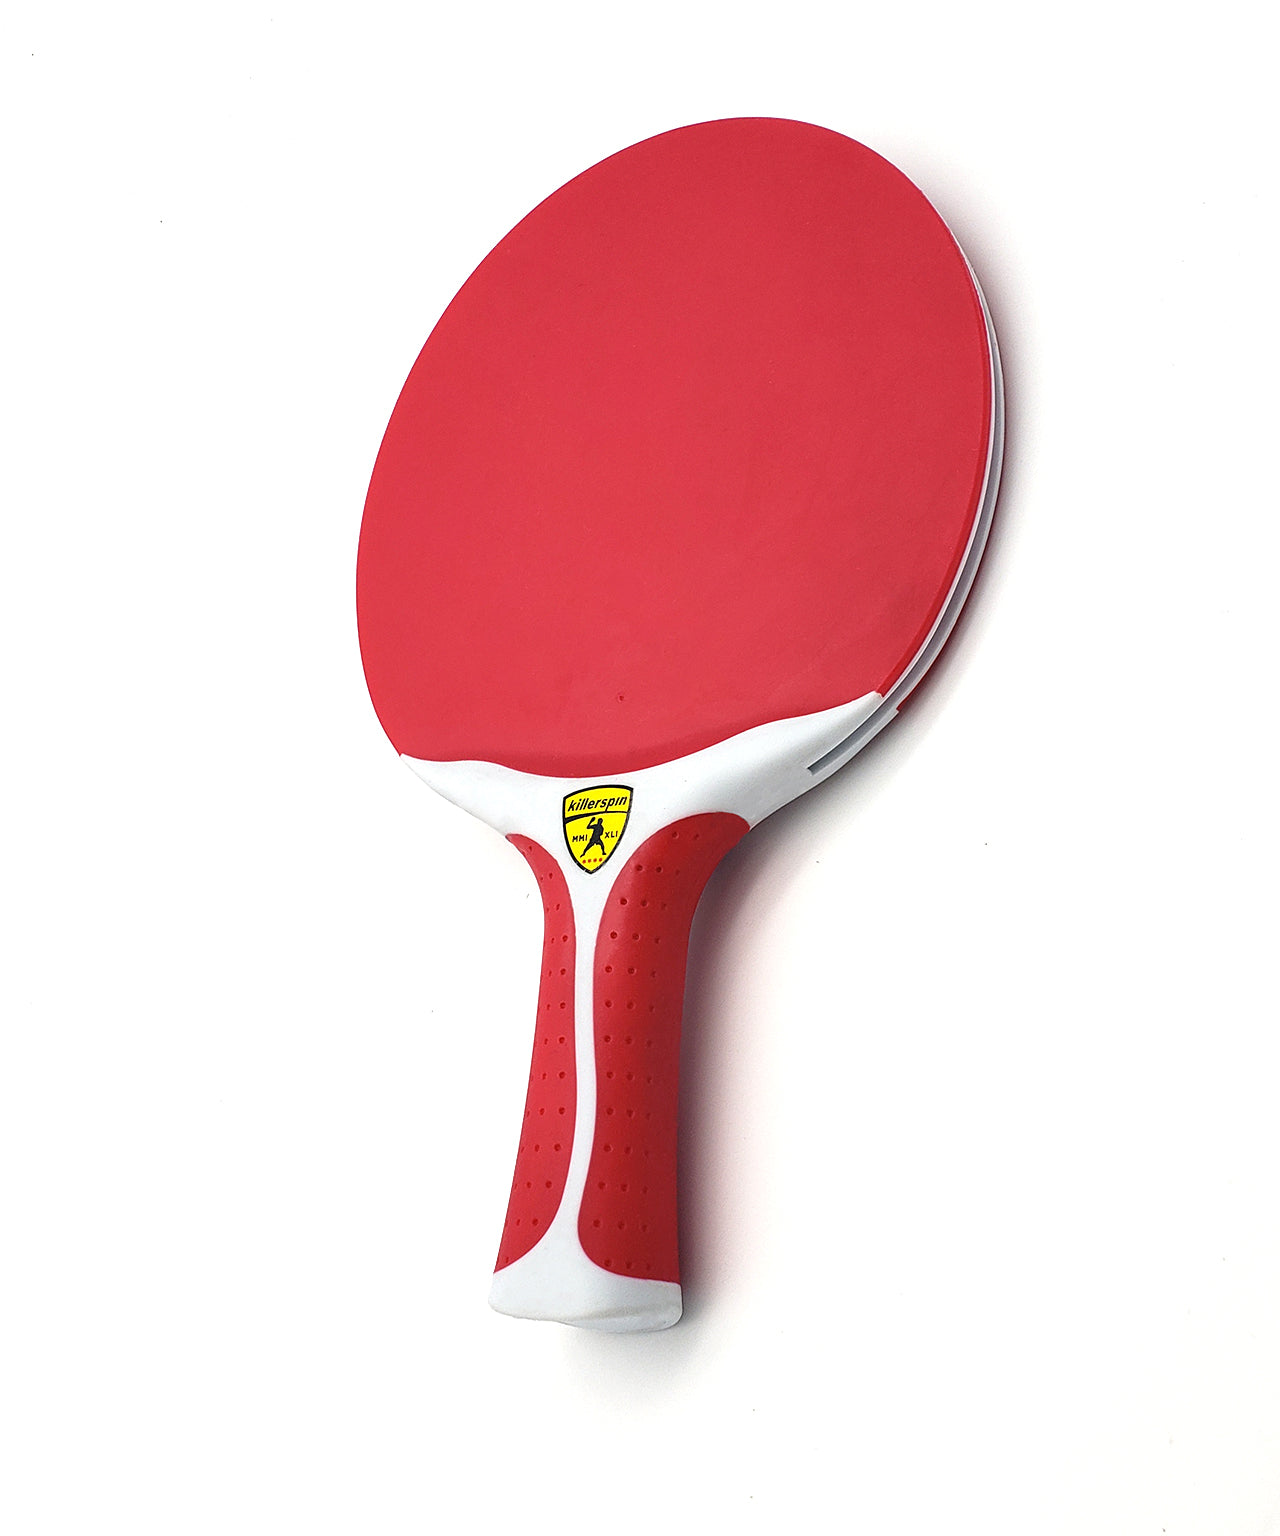 Killerspin Outdoor Ping Pong Paddle Canvas Swirl Red